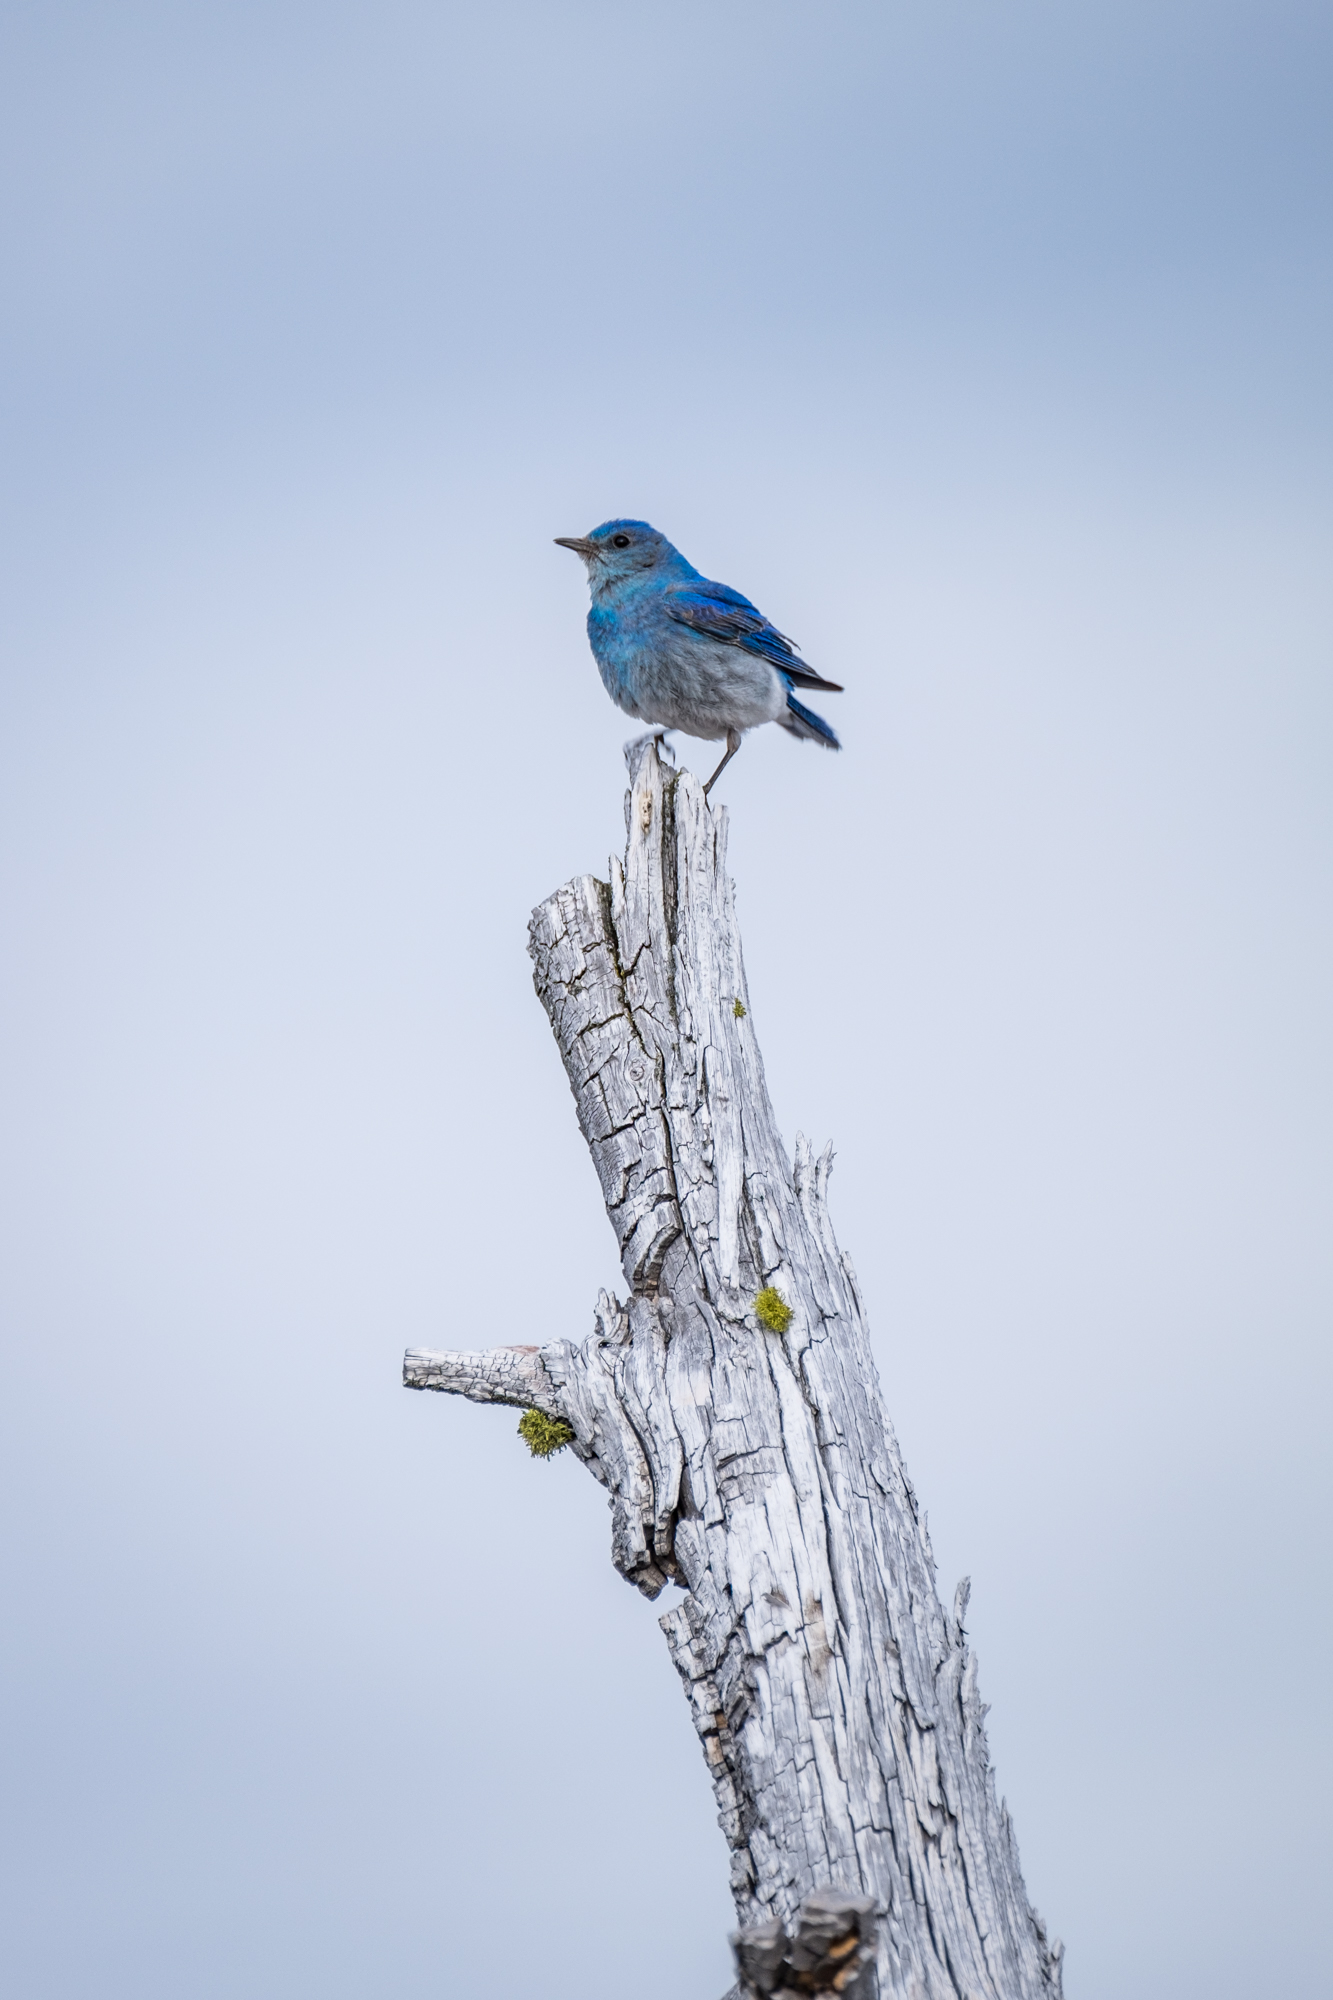 I am not sure what kind of bird this is, but it matched the crystal blue waters of the lake.